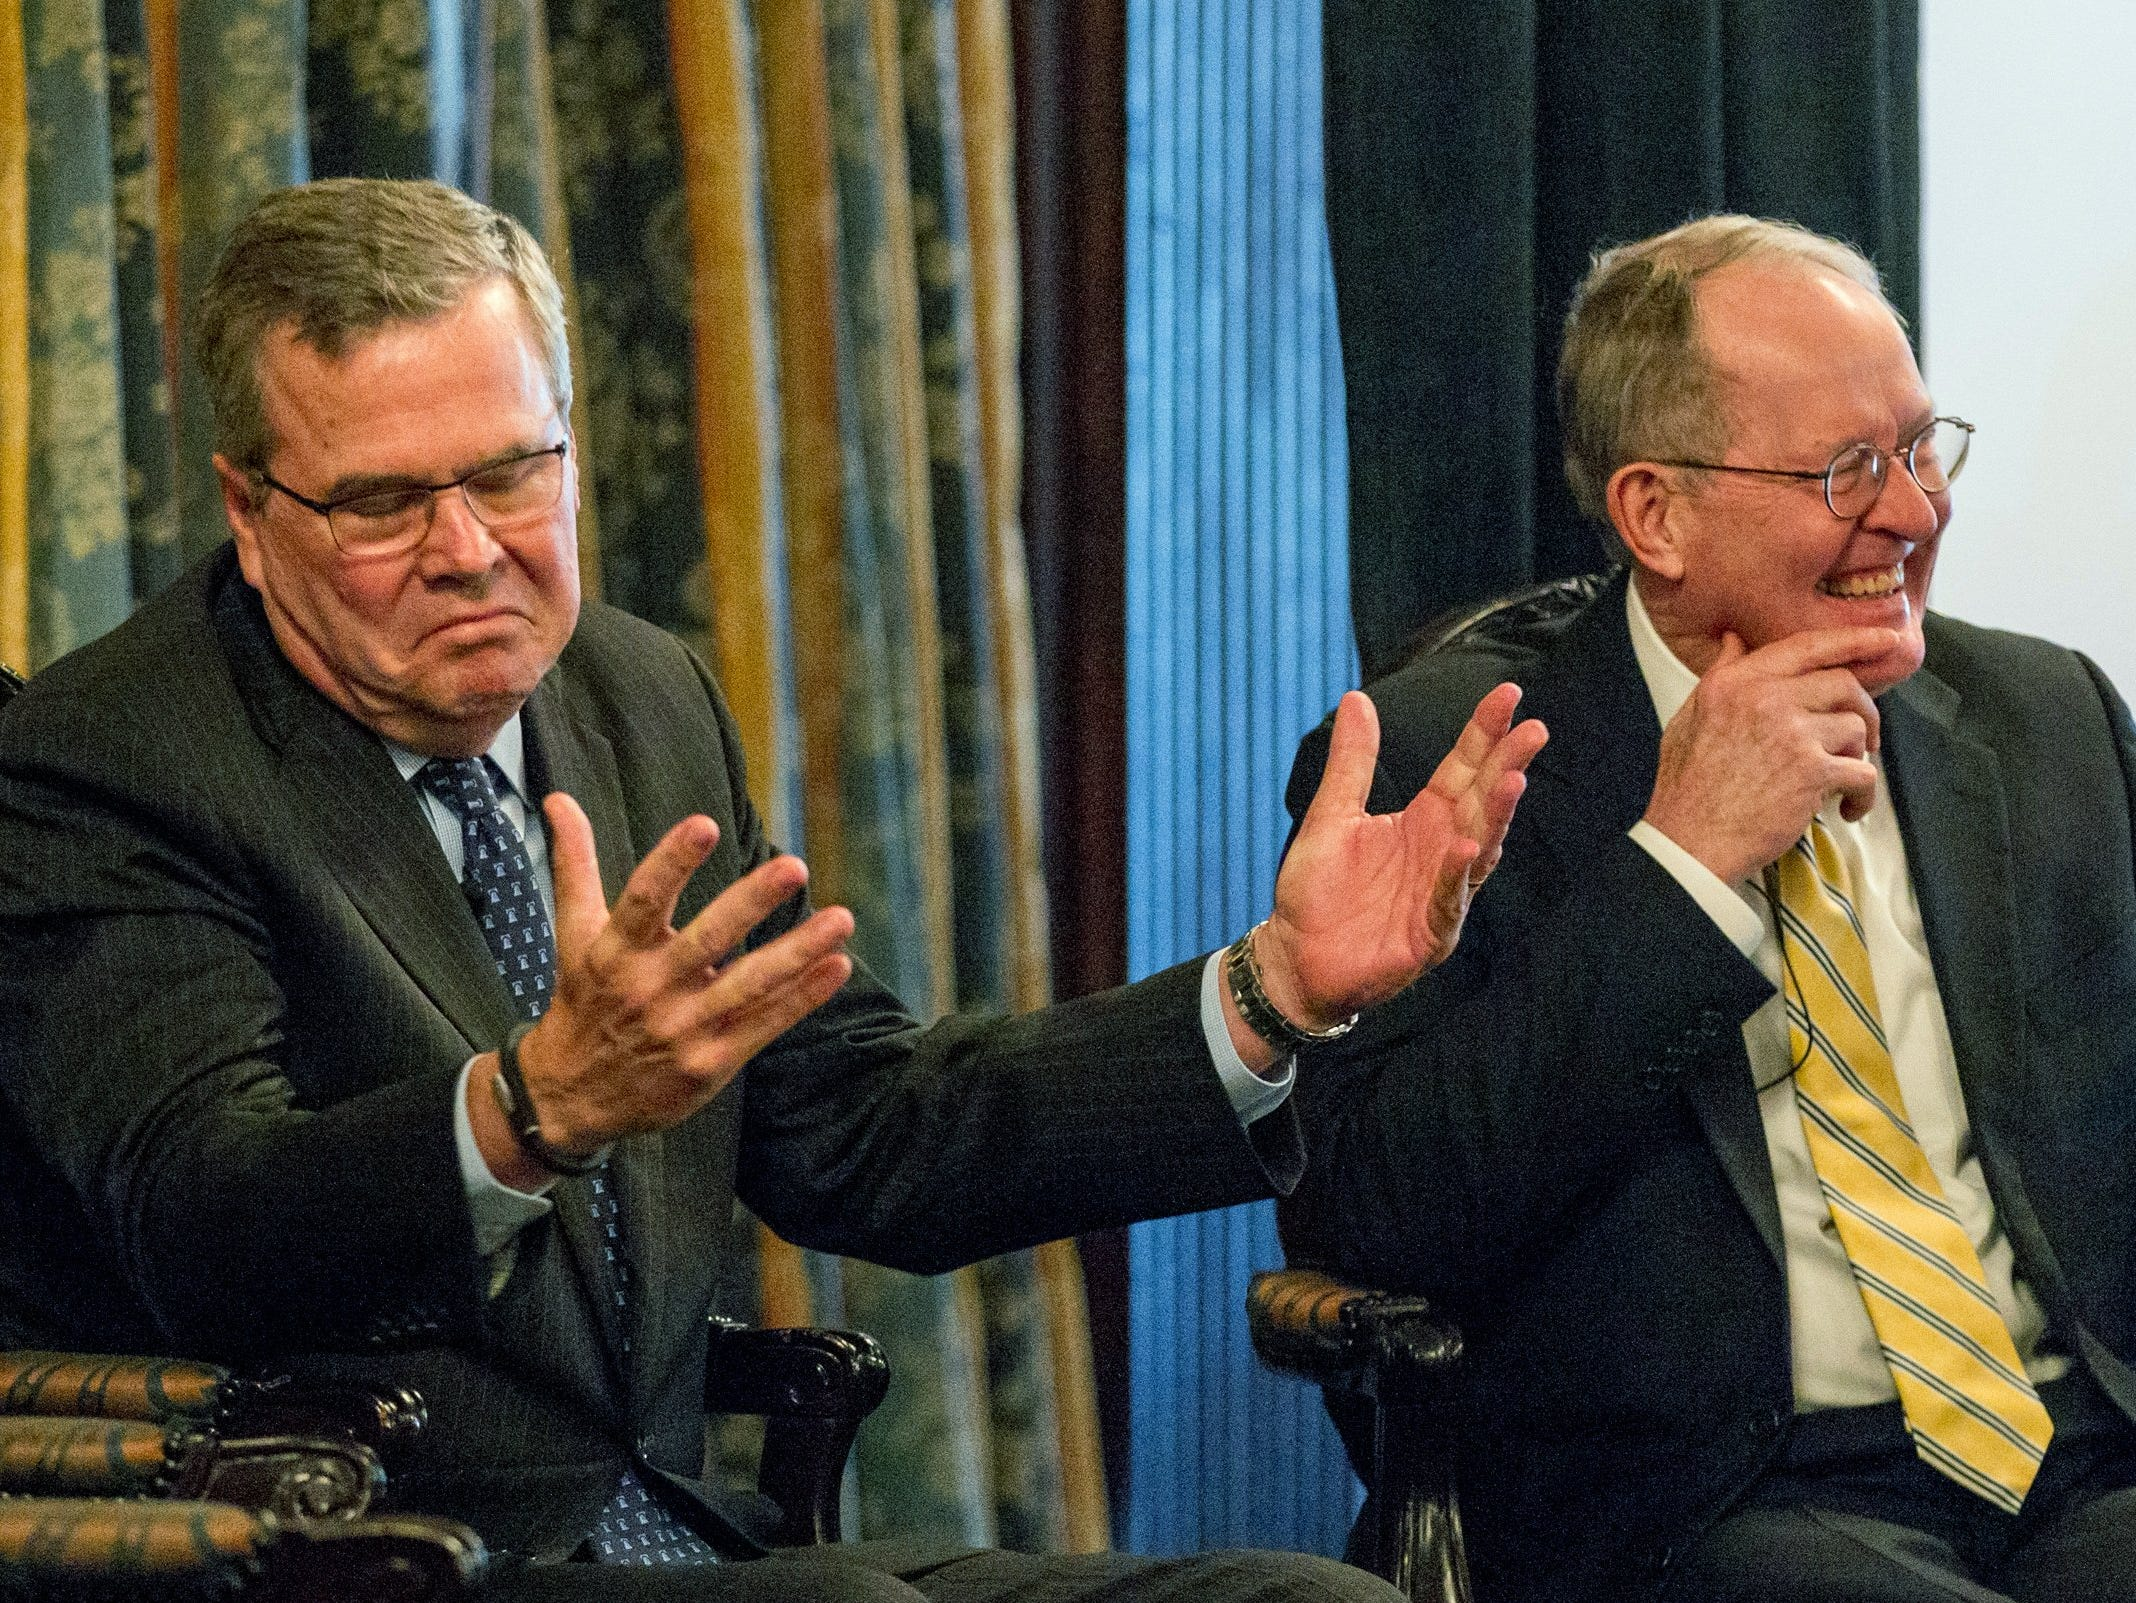 Former Florida Gov. Jeb Bush, left, gestures during at an education forum in Nashville, Tenn., on Wednesday, March 19, 2014 with U.S. Sen. Lamar Alexander, R-Tennr. Bush urged politicians to make the case to their constituents in favor of Common Core education standards.